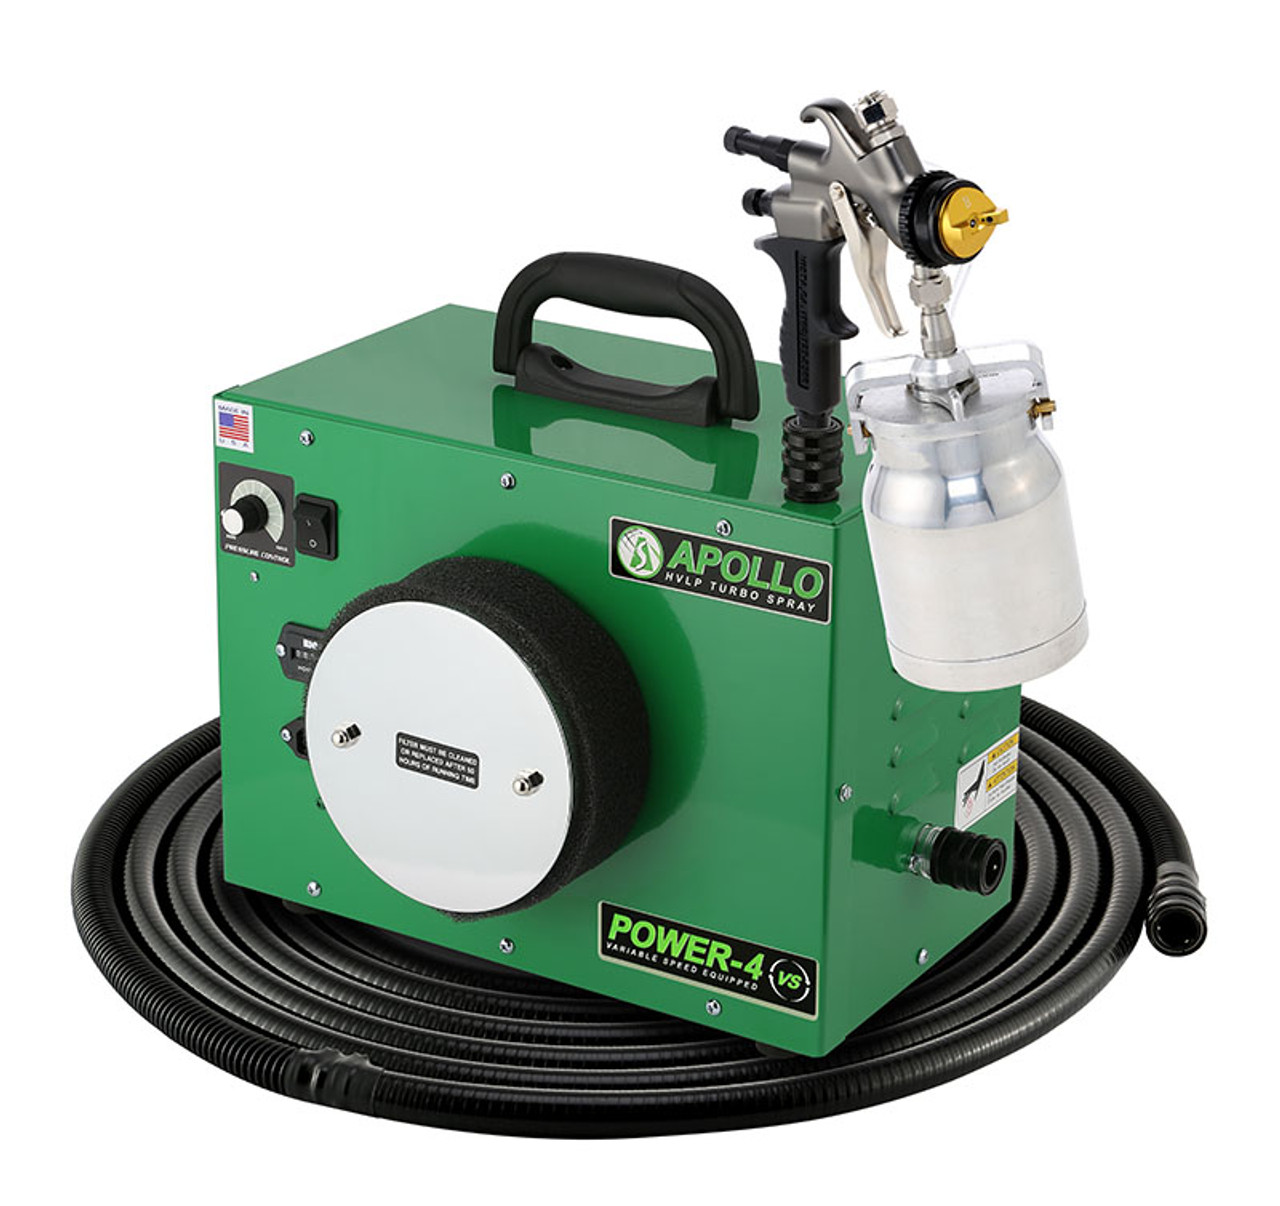 Apollo - 4-stage, POWER 4 VS; 110 volt motors with 29' air flex hose and A7700QT spray gun and an A5251-NT Siphon Feed cup. (PW4VS1107700QT)